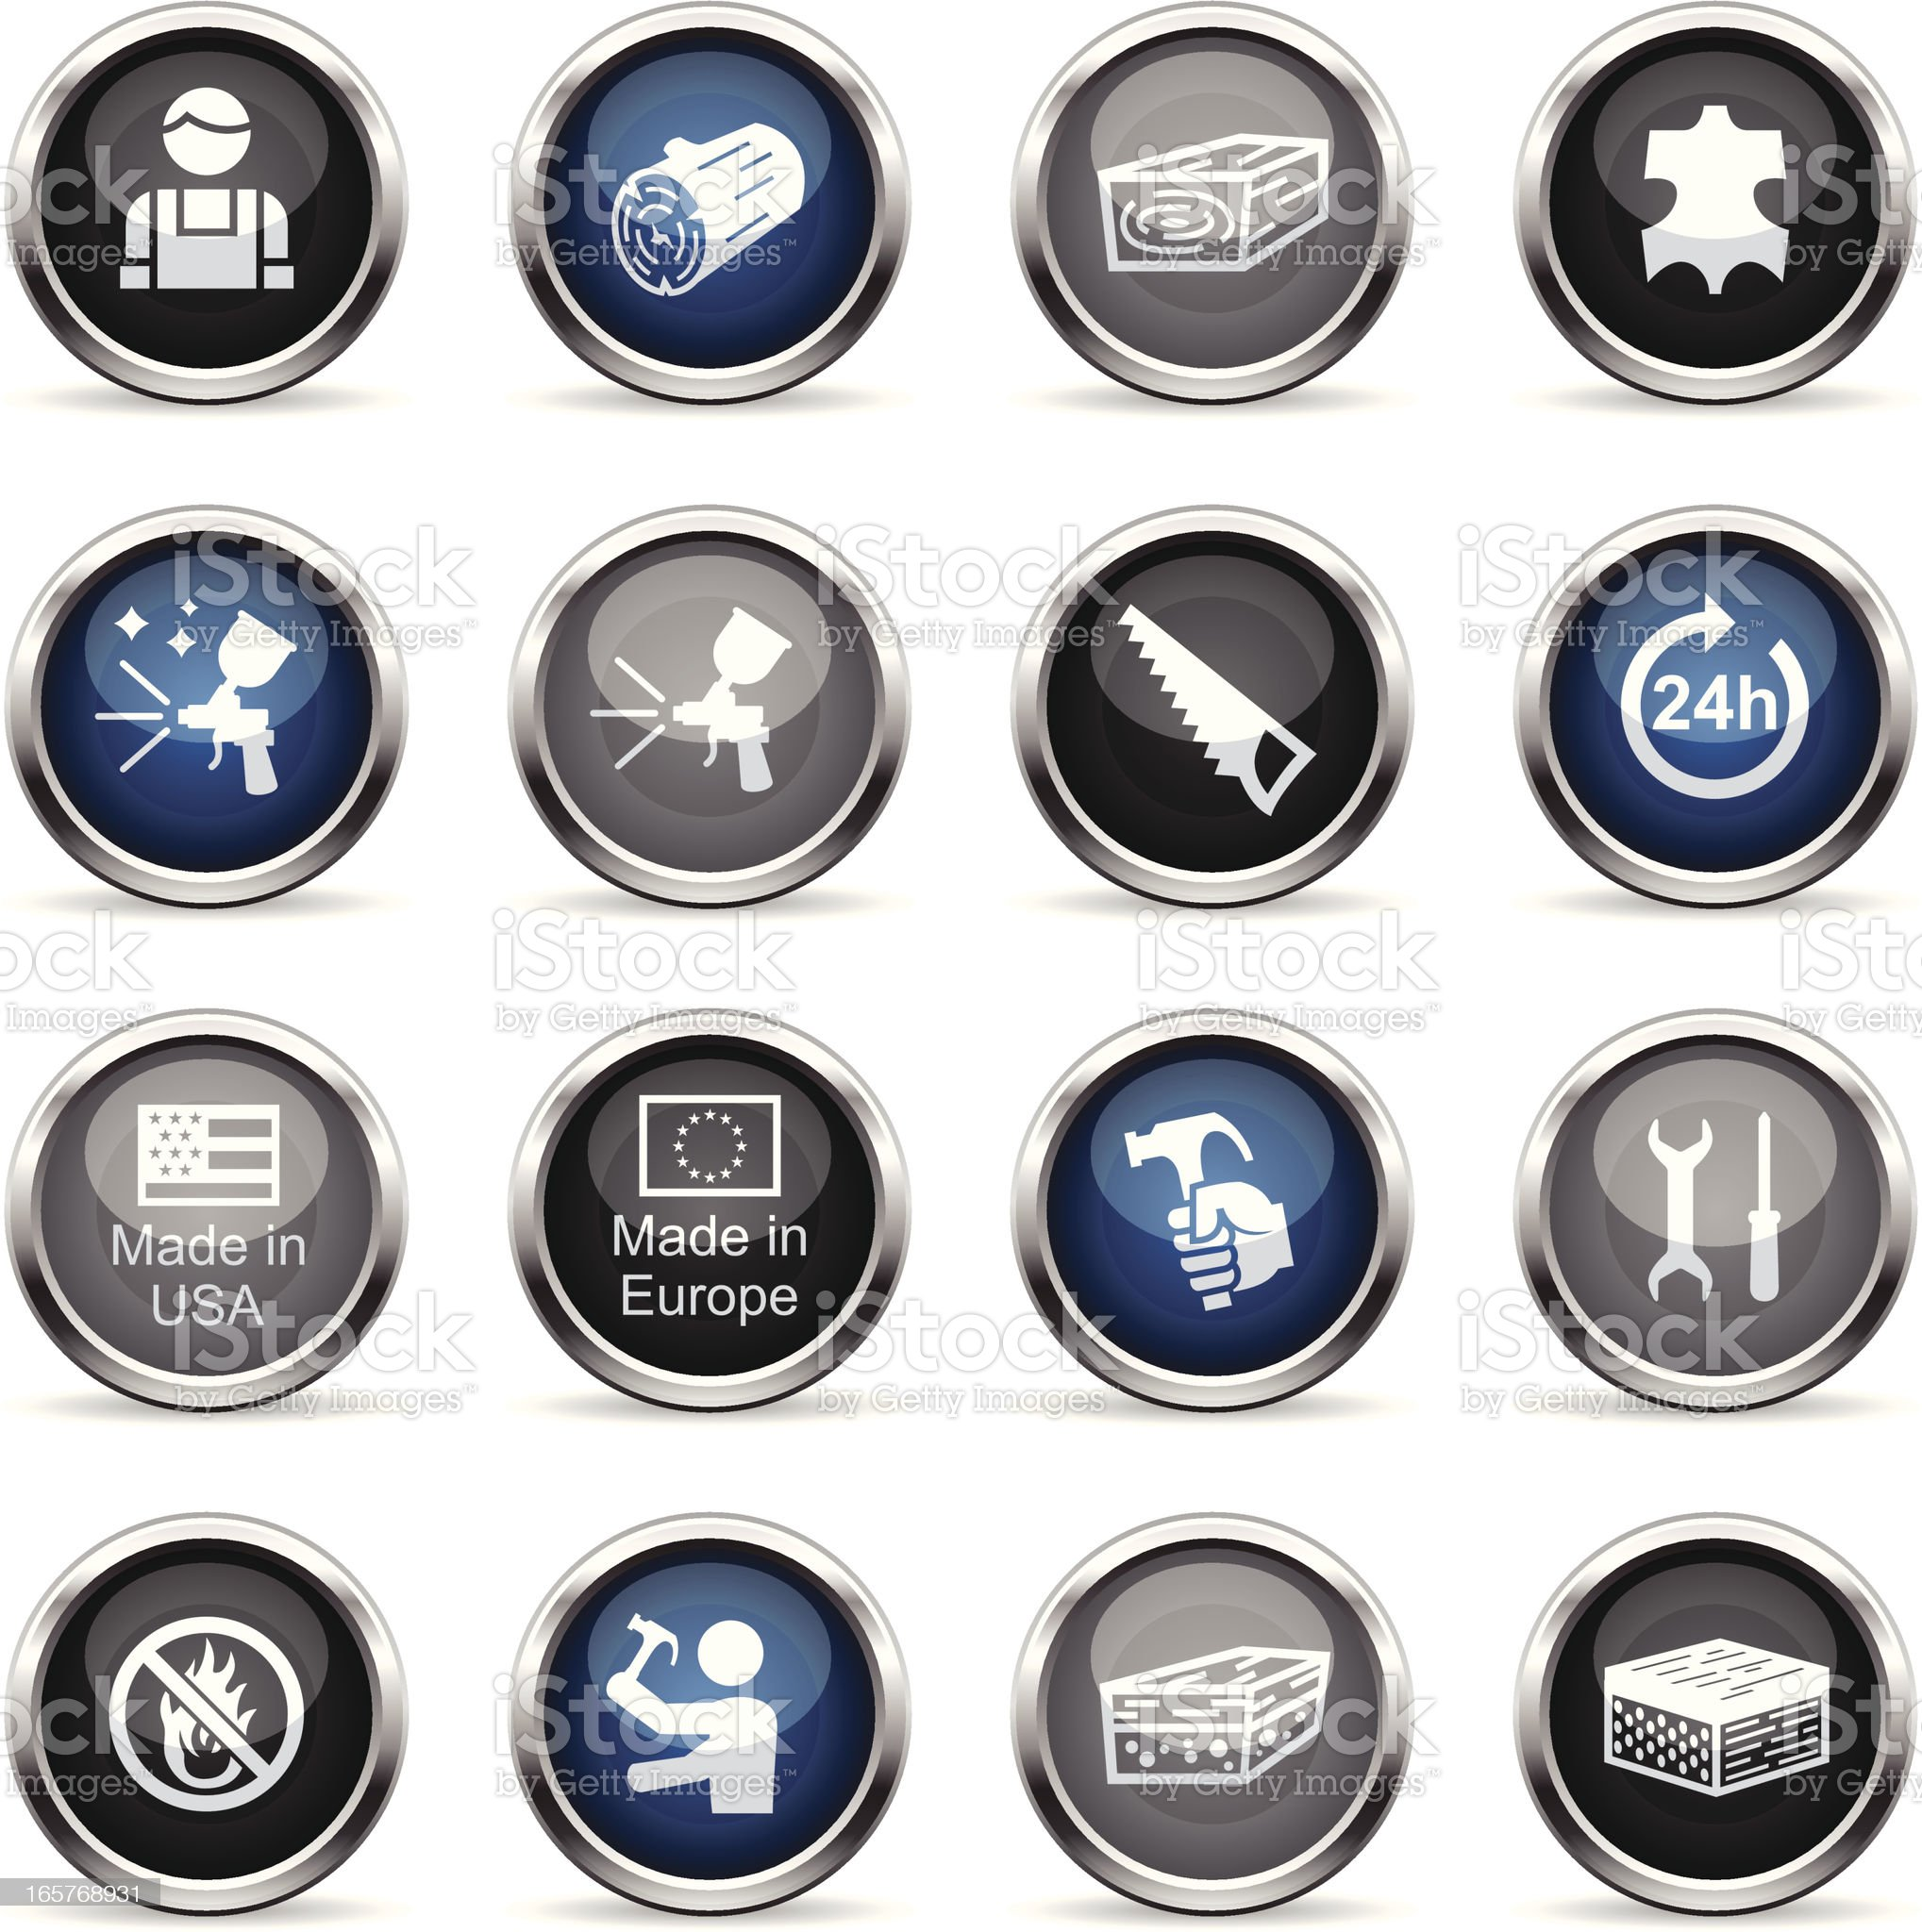 Supergloss Icons - Furniture Fabrication royalty-free stock vector art